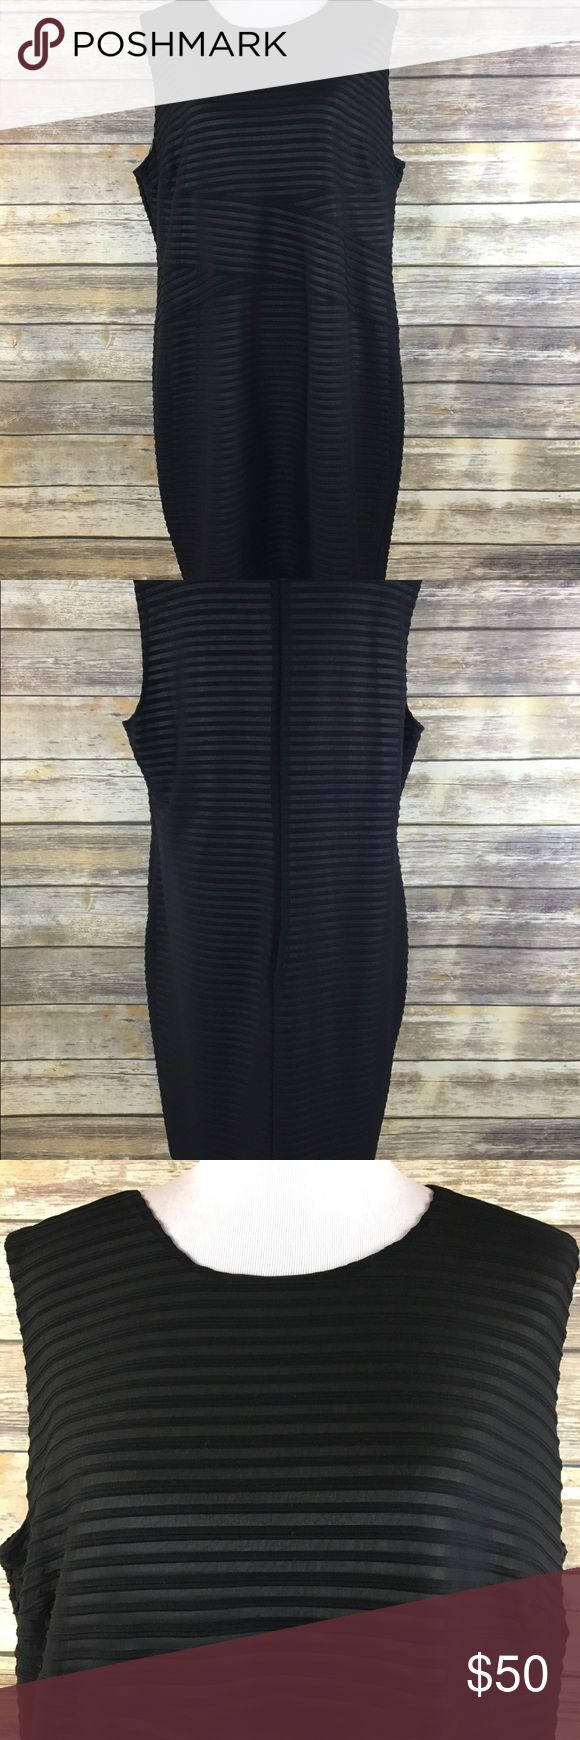 Calvin Klein women's plus size black dress 20 Calvin Klein women's plus size dress. Size 20. Black with nude lining. Black on nude striped detail. Sleeveless. Knee length. Formal, career, little black dress. Armpit to armpit measures about 24 inches. Length is about 39 inches. Calvin Klein Dresses